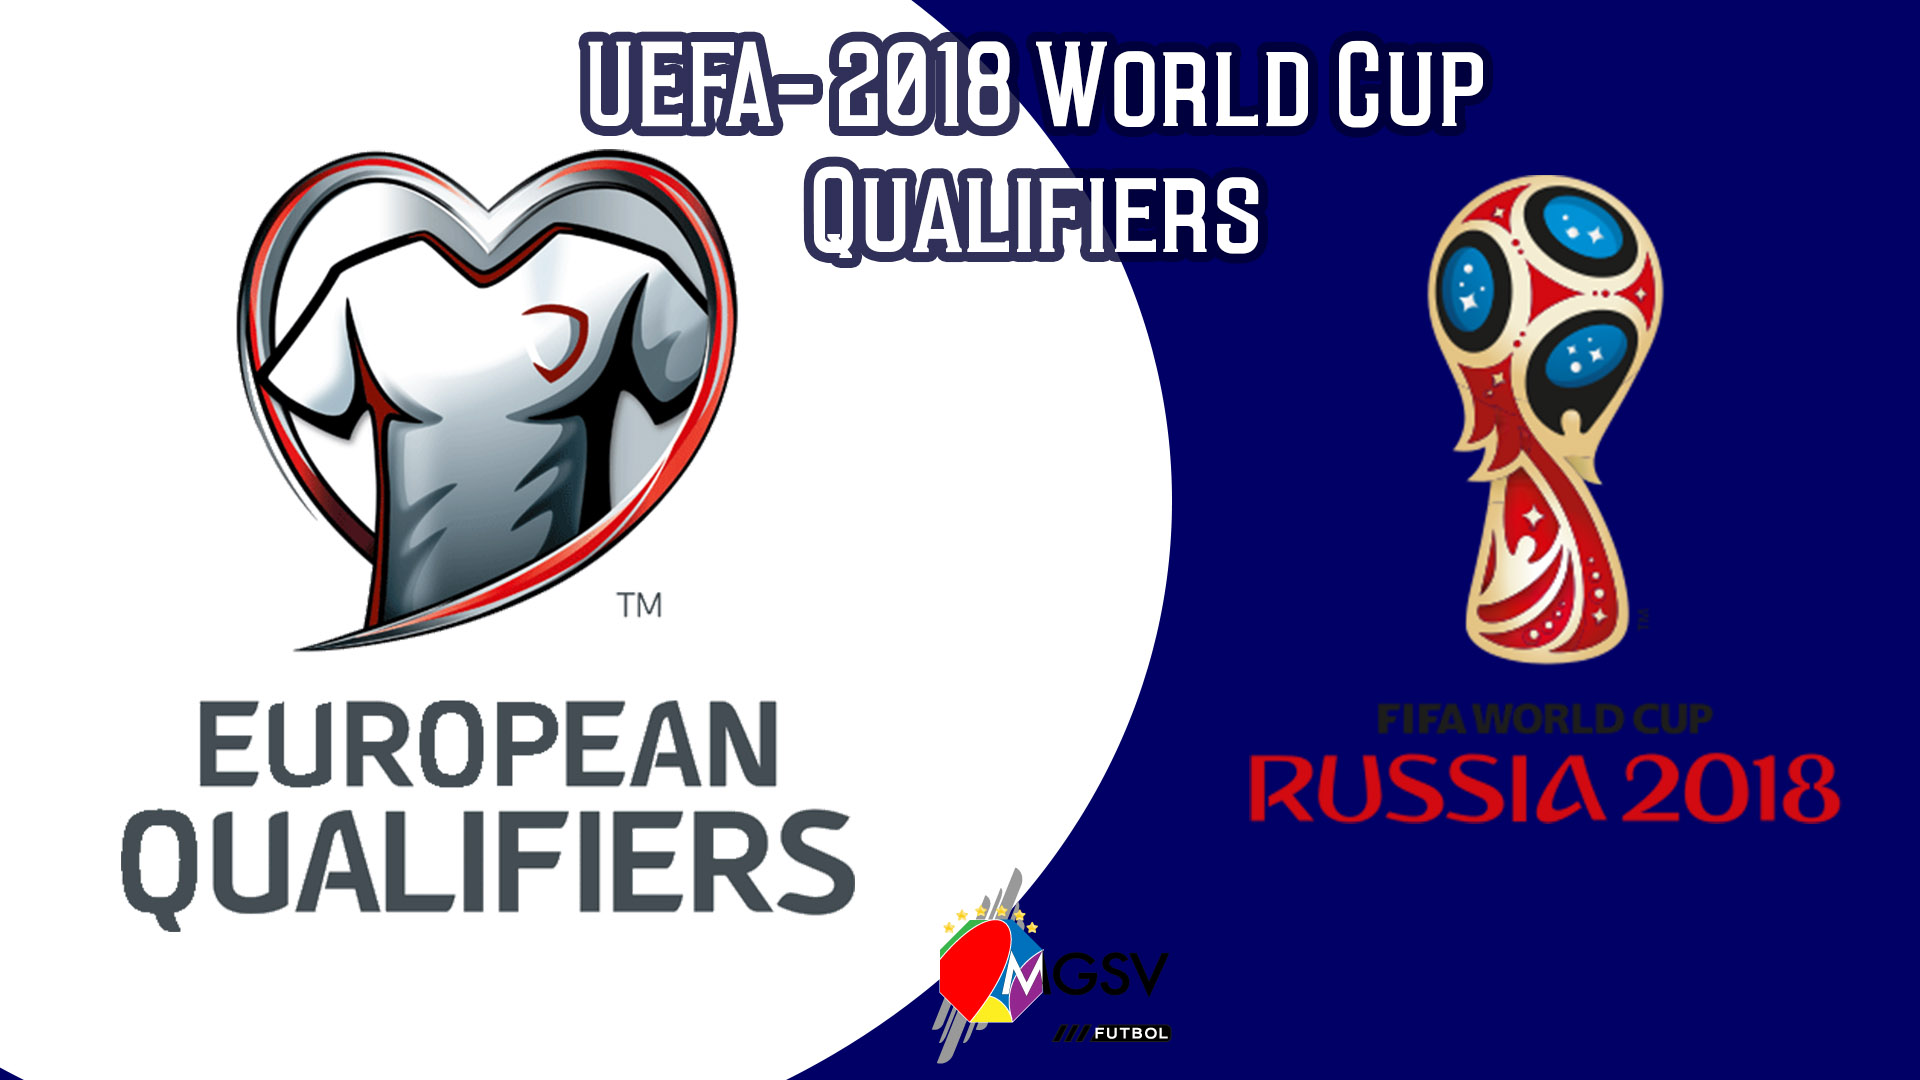 Fantastic Europe World Cup 2018 - Articlce-Cover-Template  Image_48322 .jpg